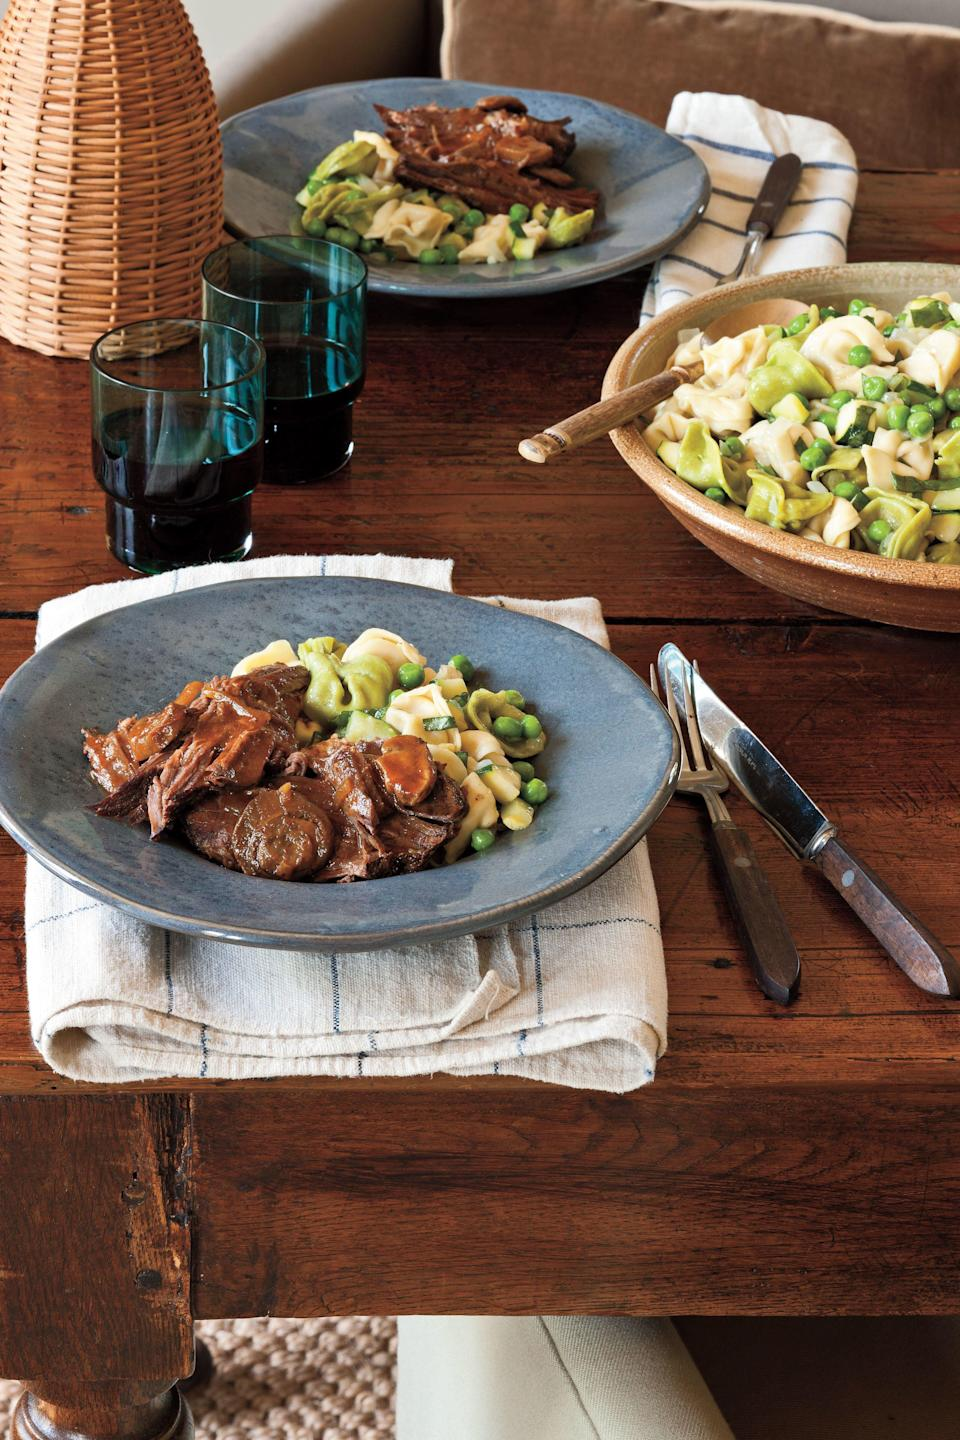 """<p><strong>Recipe:</strong> <a href=""""http://www.myrecipes.com/recipe/italian-pot-roast-10000002012828/"""" rel=""""nofollow noopener"""" target=""""_blank"""" data-ylk=""""slk:Italian Pot Roast"""" class=""""link rapid-noclick-resp""""><strong>Italian Pot Roast</strong></a></p> <p>This hearty pot roast is perfect for a busy weeknight. Just put the ingredients in your slow cooker and let it do all the work.</p>"""